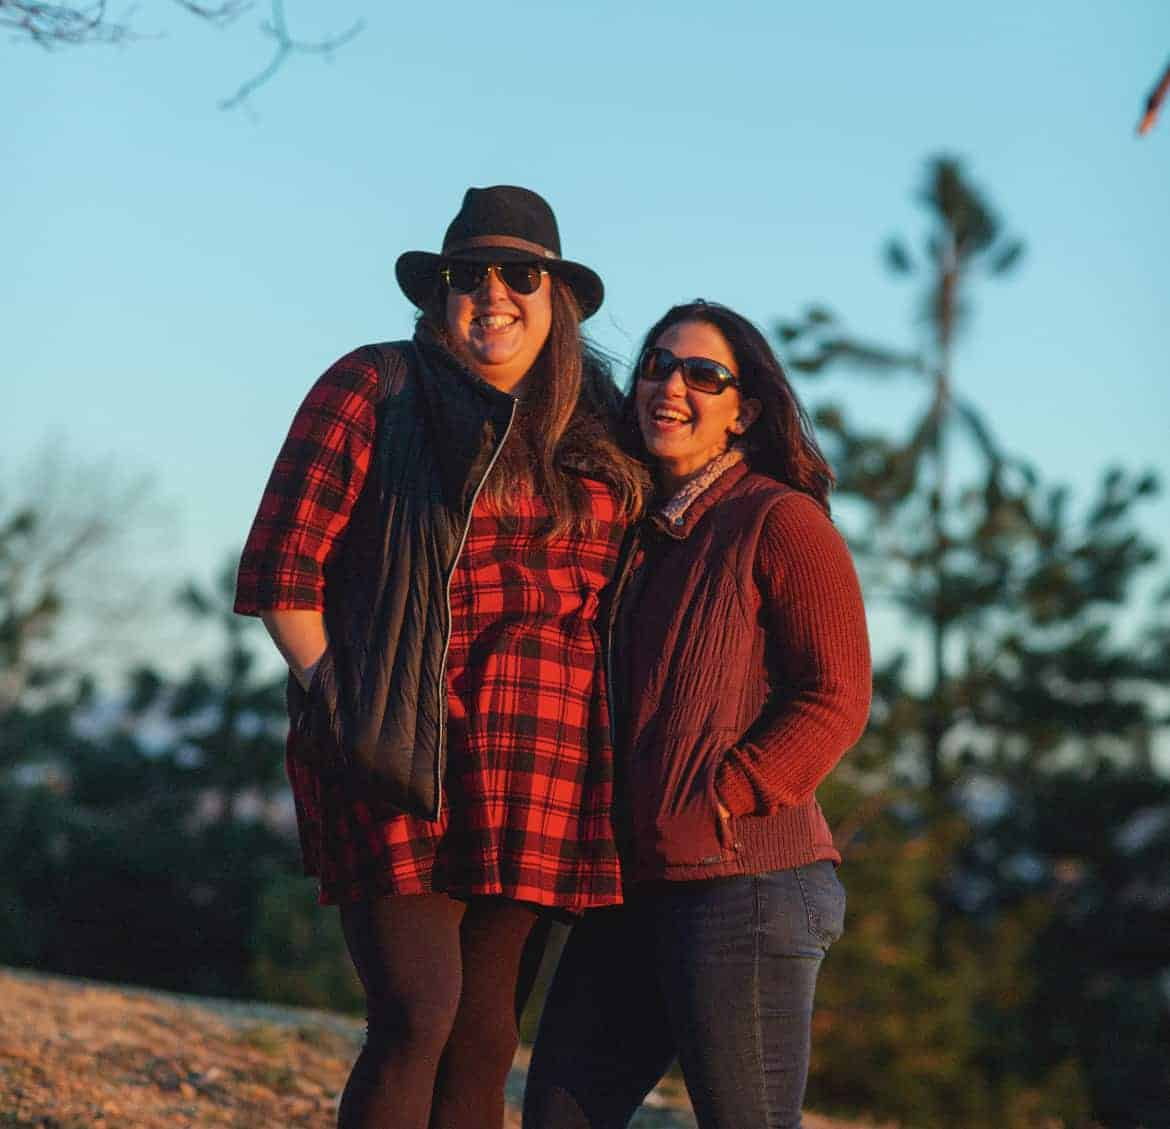 Two women wearing red posing together in wilderness.